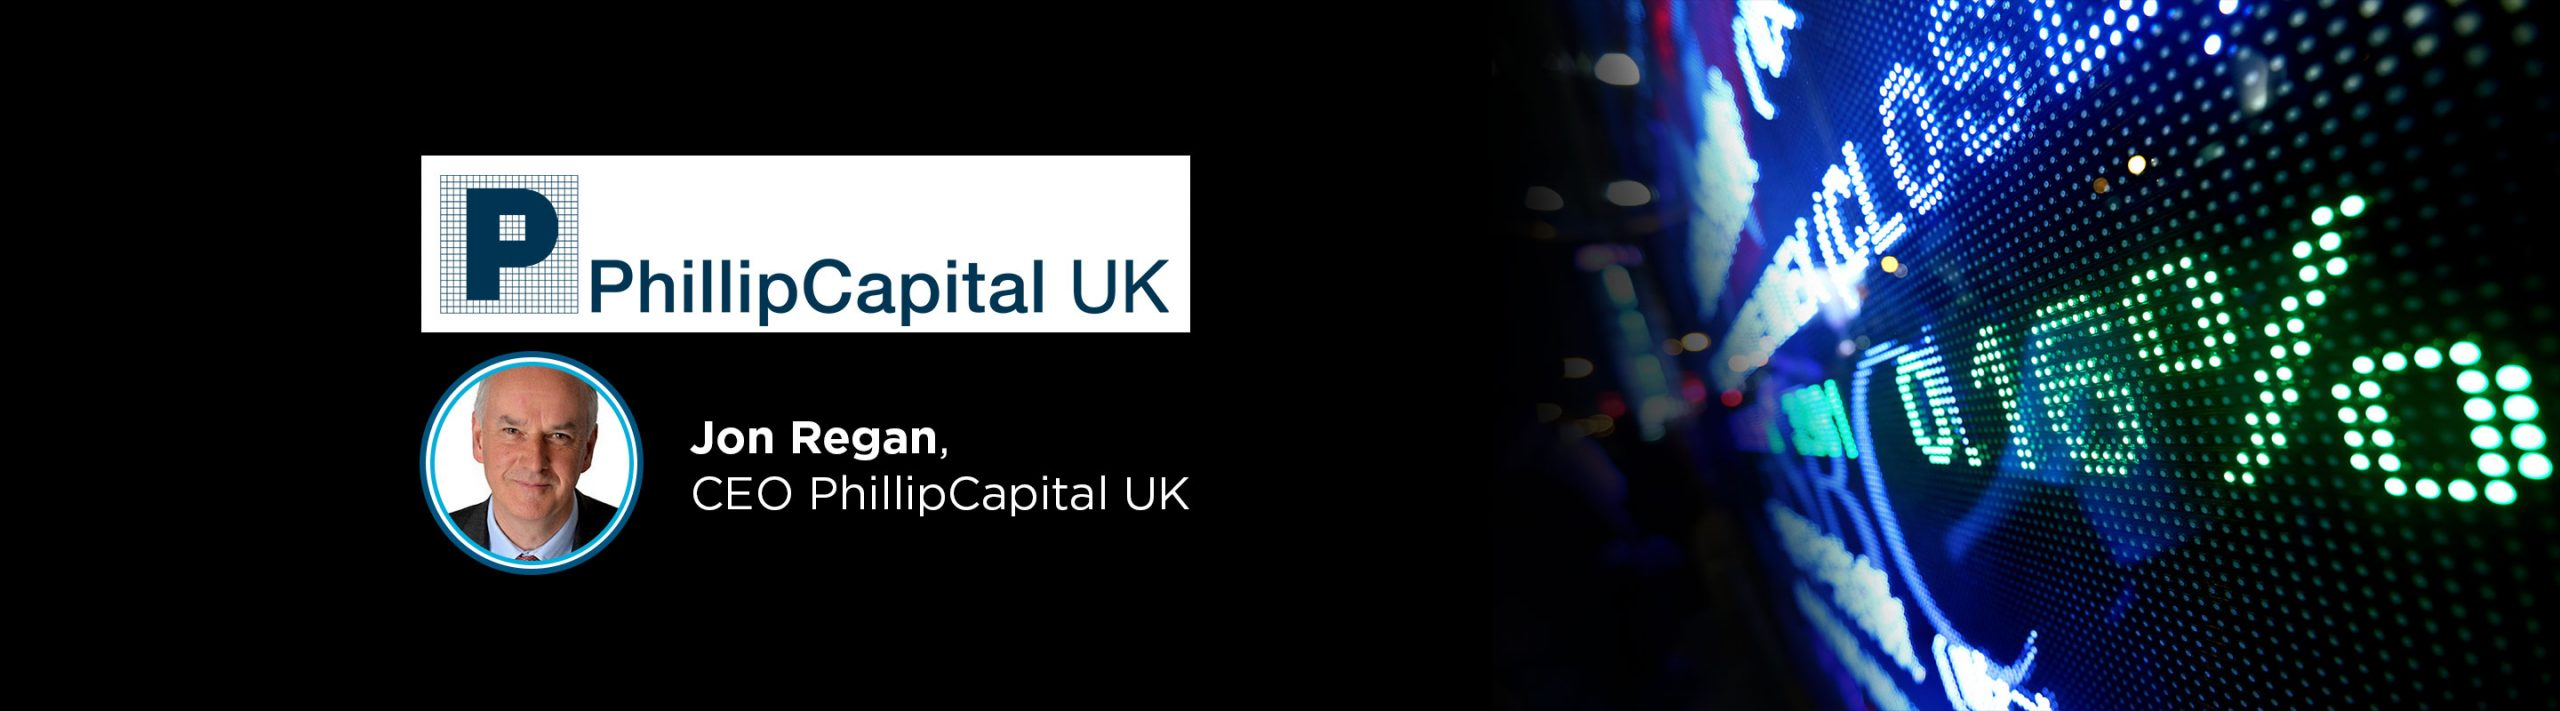 PhillipCapital UK Implements BornTec's CrossCheck FIX Hub and Data Software Solution